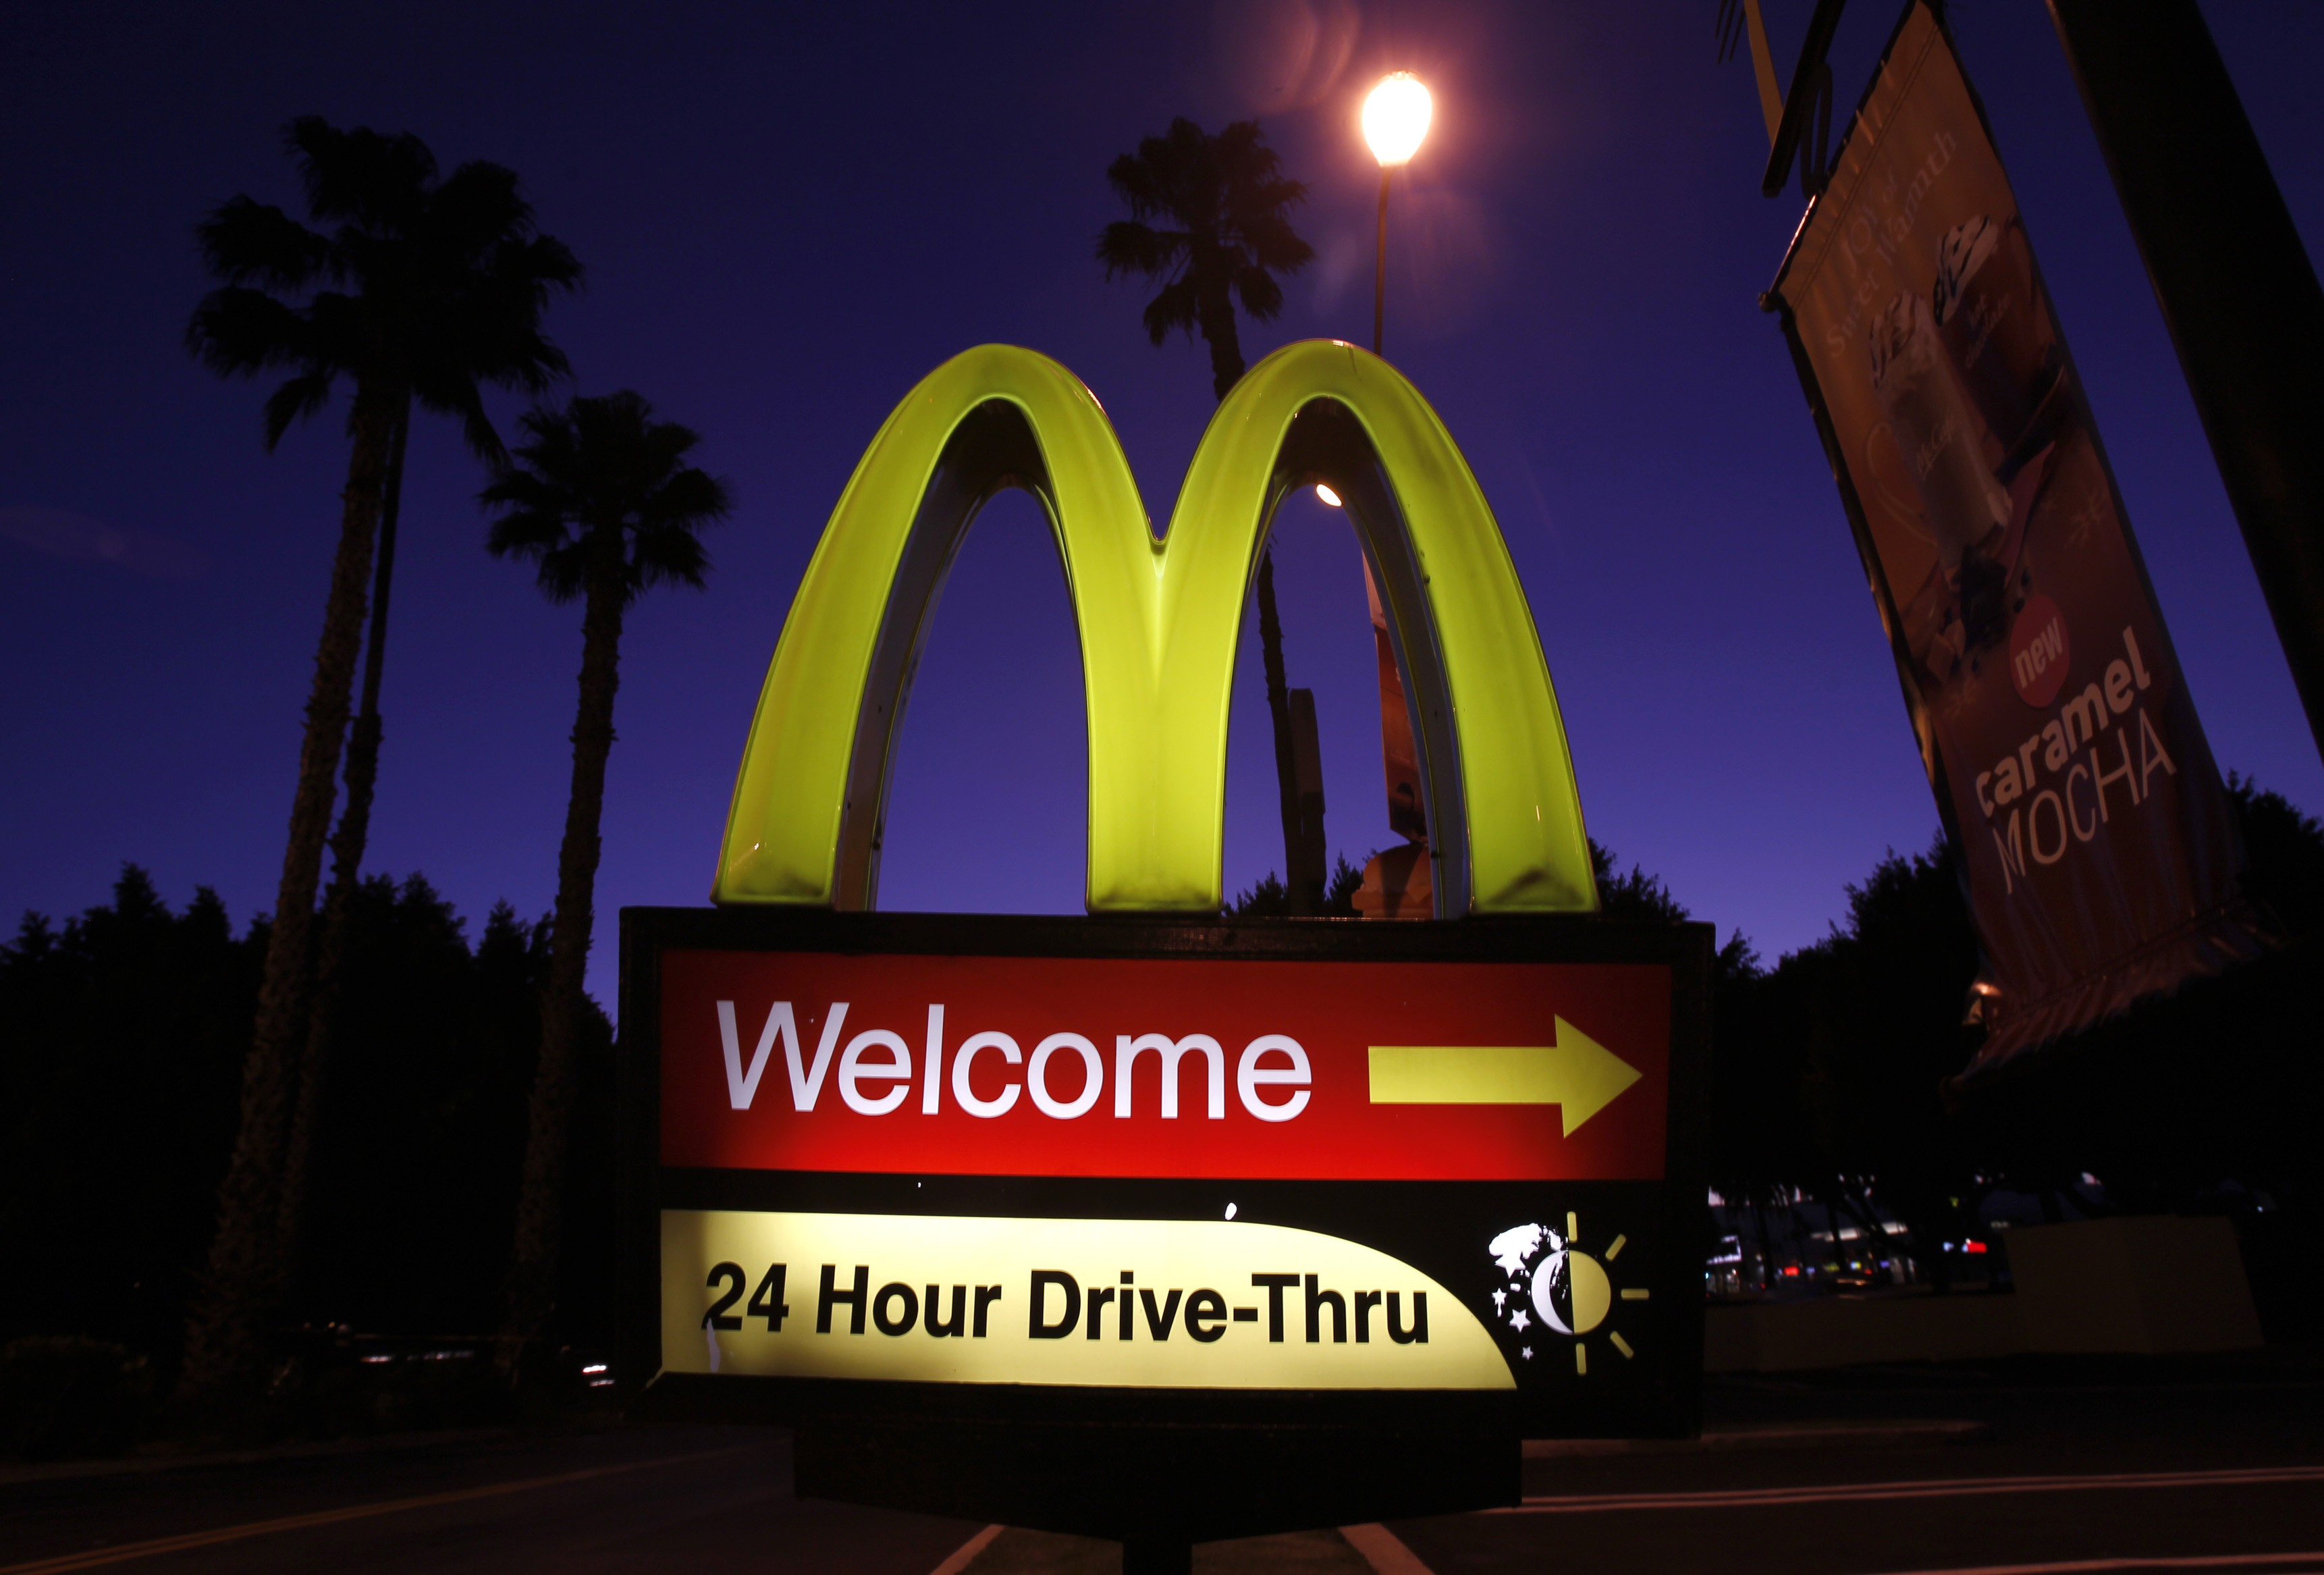 File photo of a McDonald's restaurant's drive-thru sign in Los Angeles